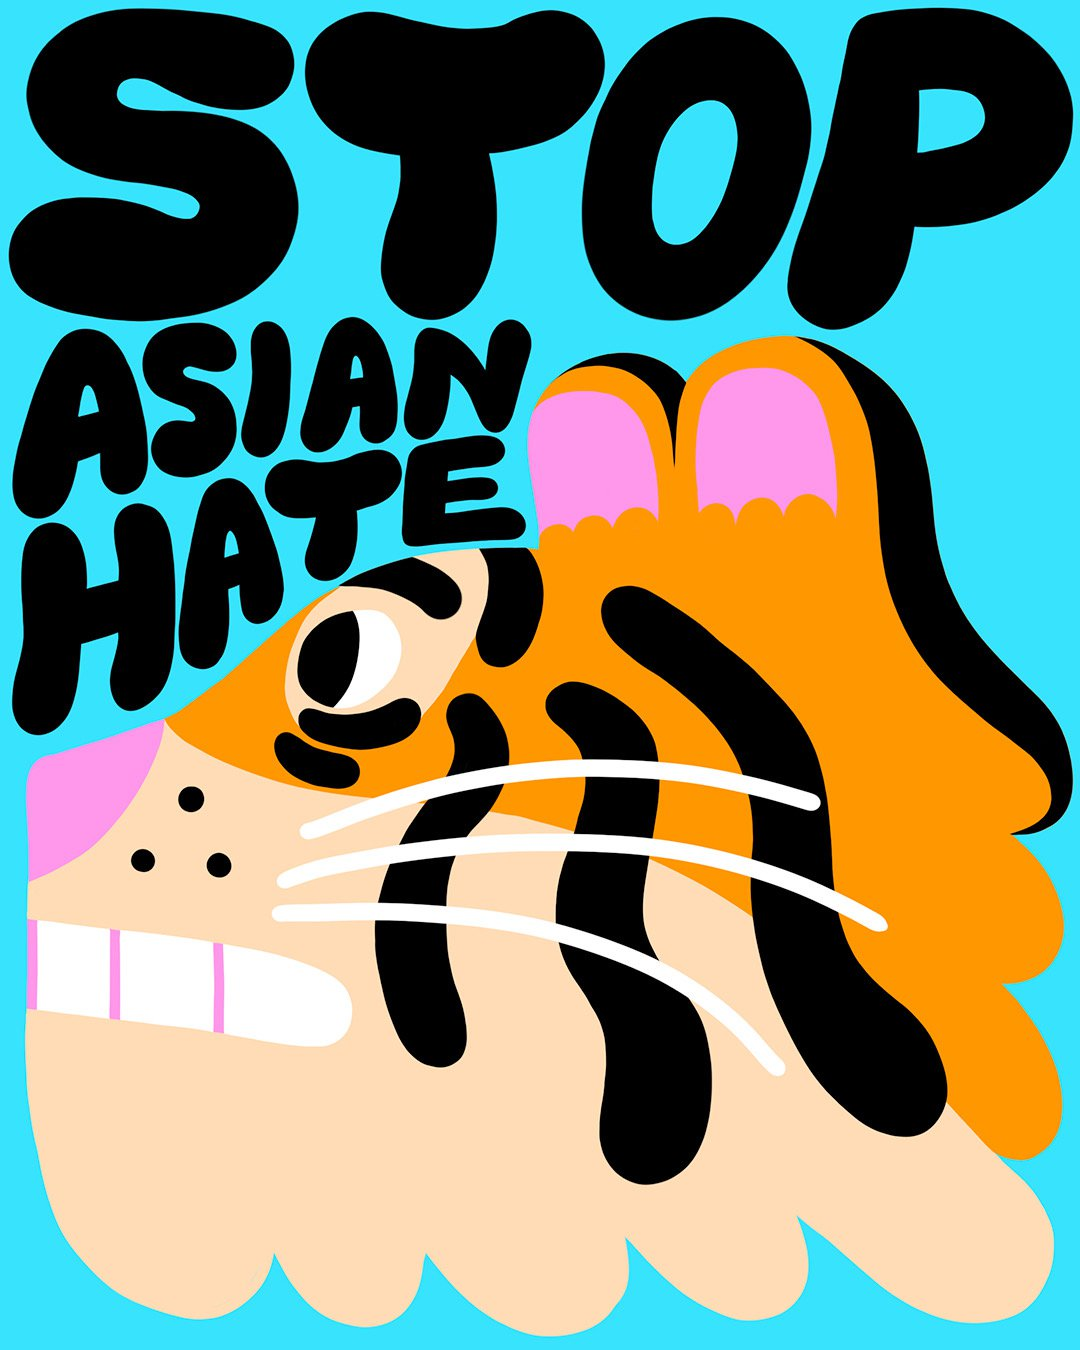 Yuk Fun and a gang of illustrators are raising money for Stop Asian Hate charities